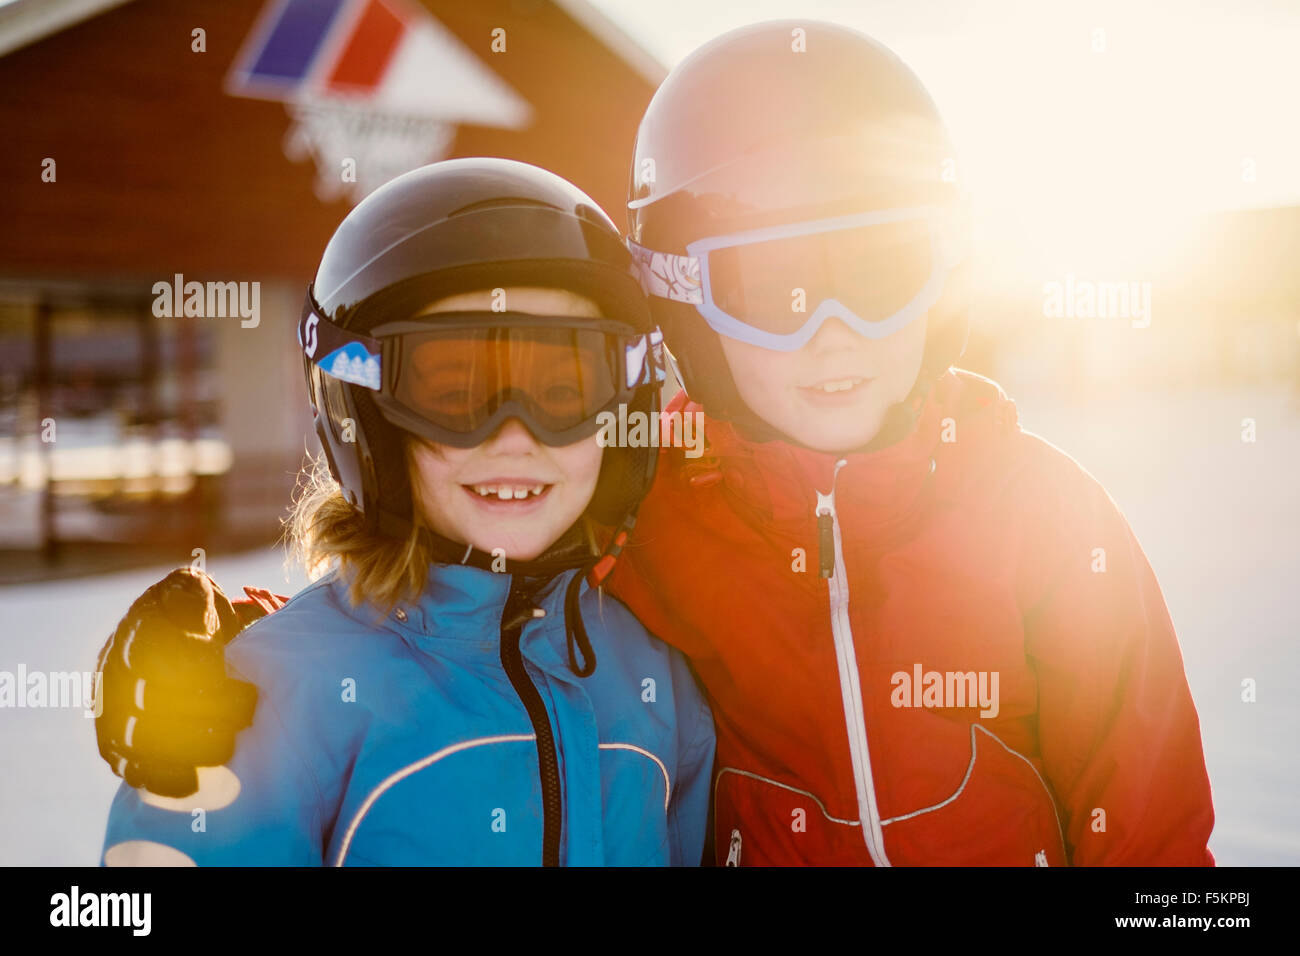 Sweden, Dalarna, Salen, Portrait of boy (10-11) and girl (8-9) - Stock Image